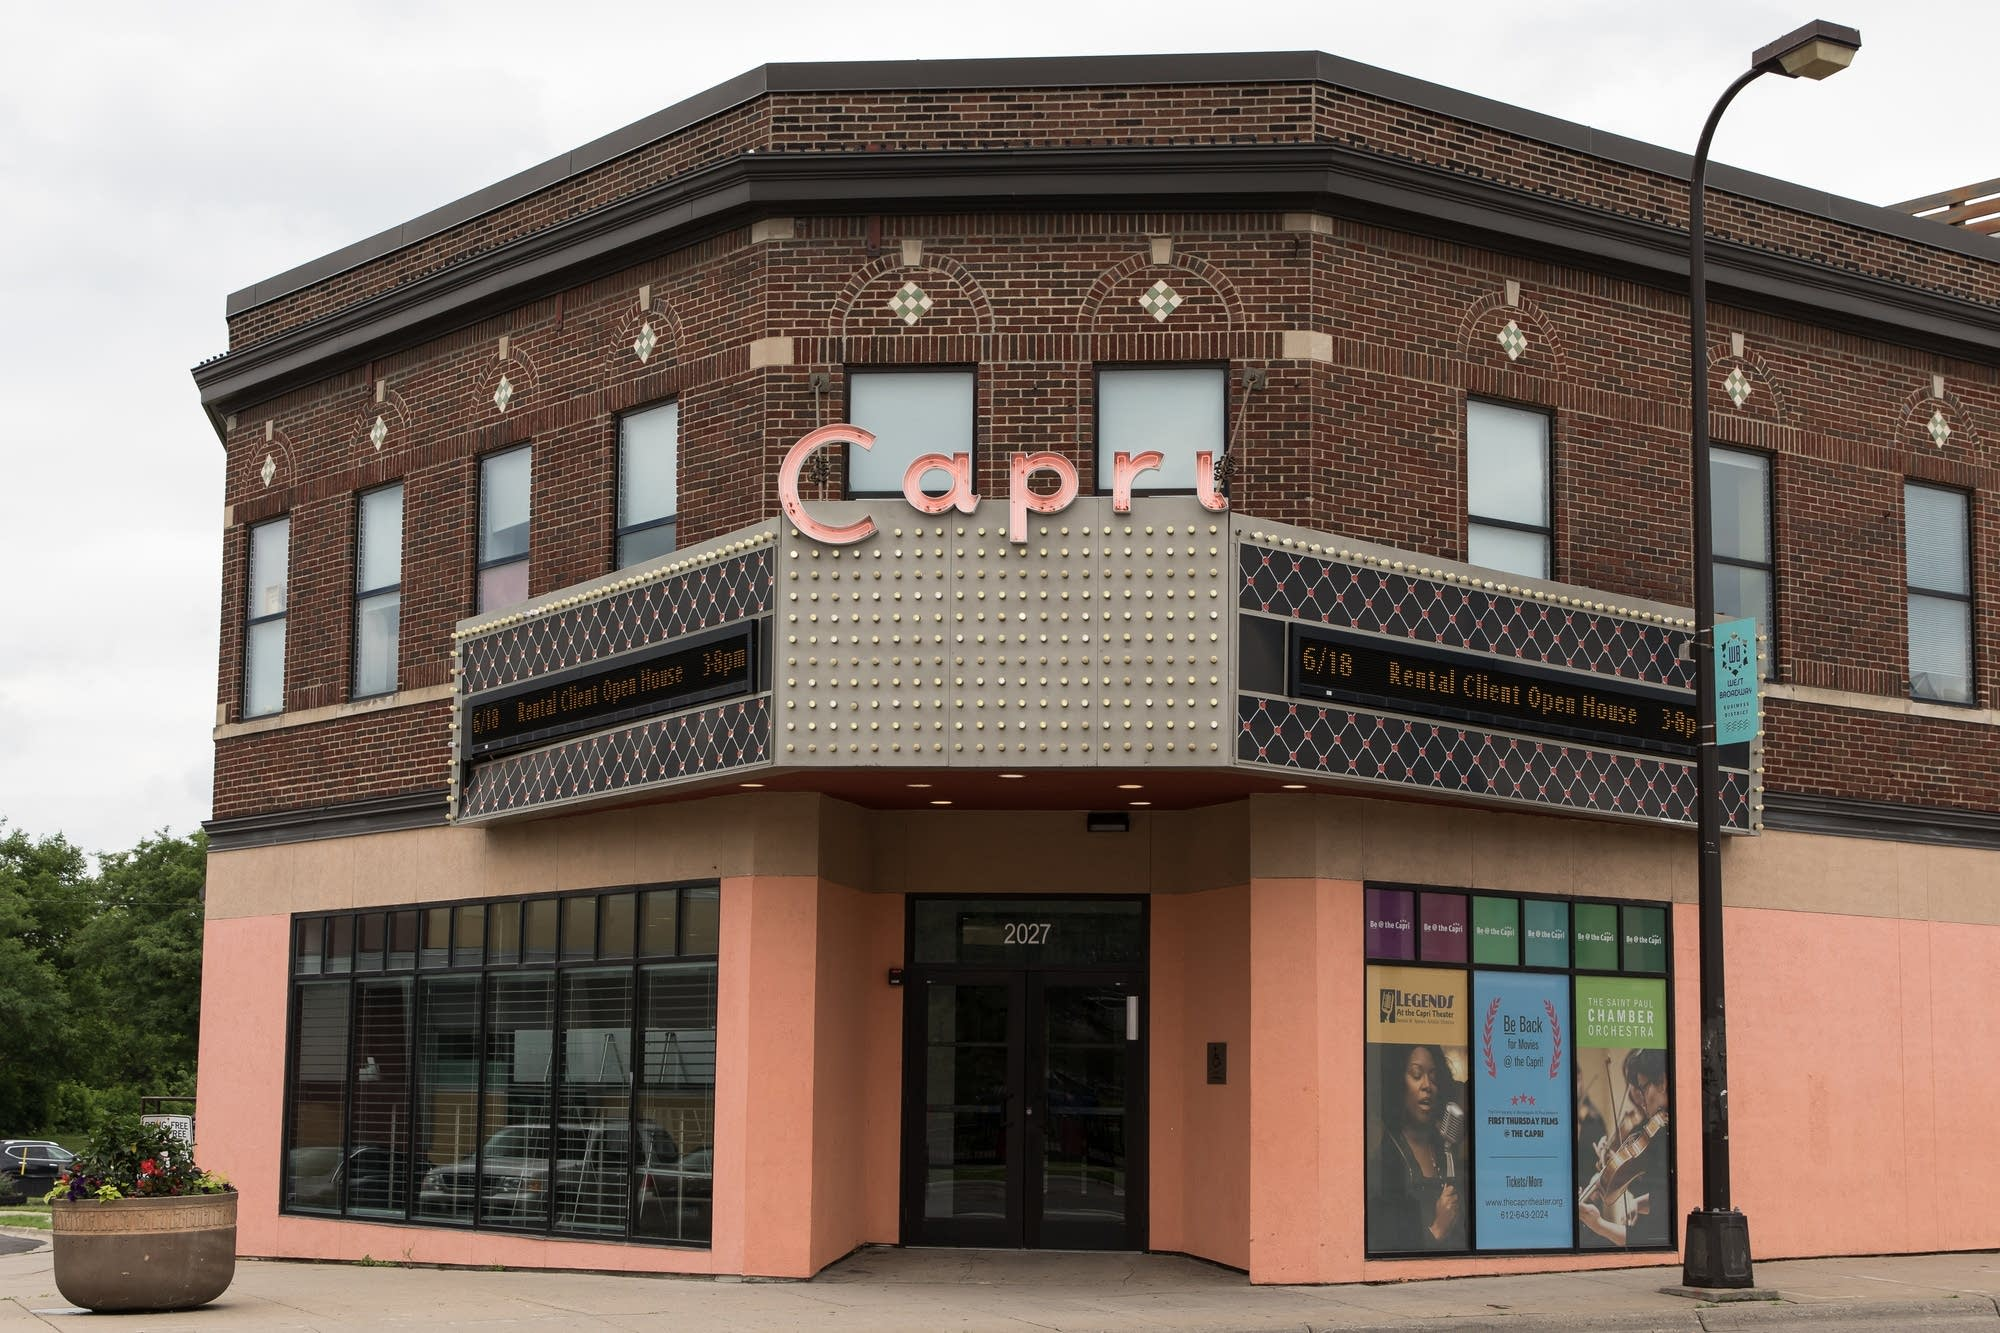 The Capri Theater sits on West Broadway in North Minneapolis.